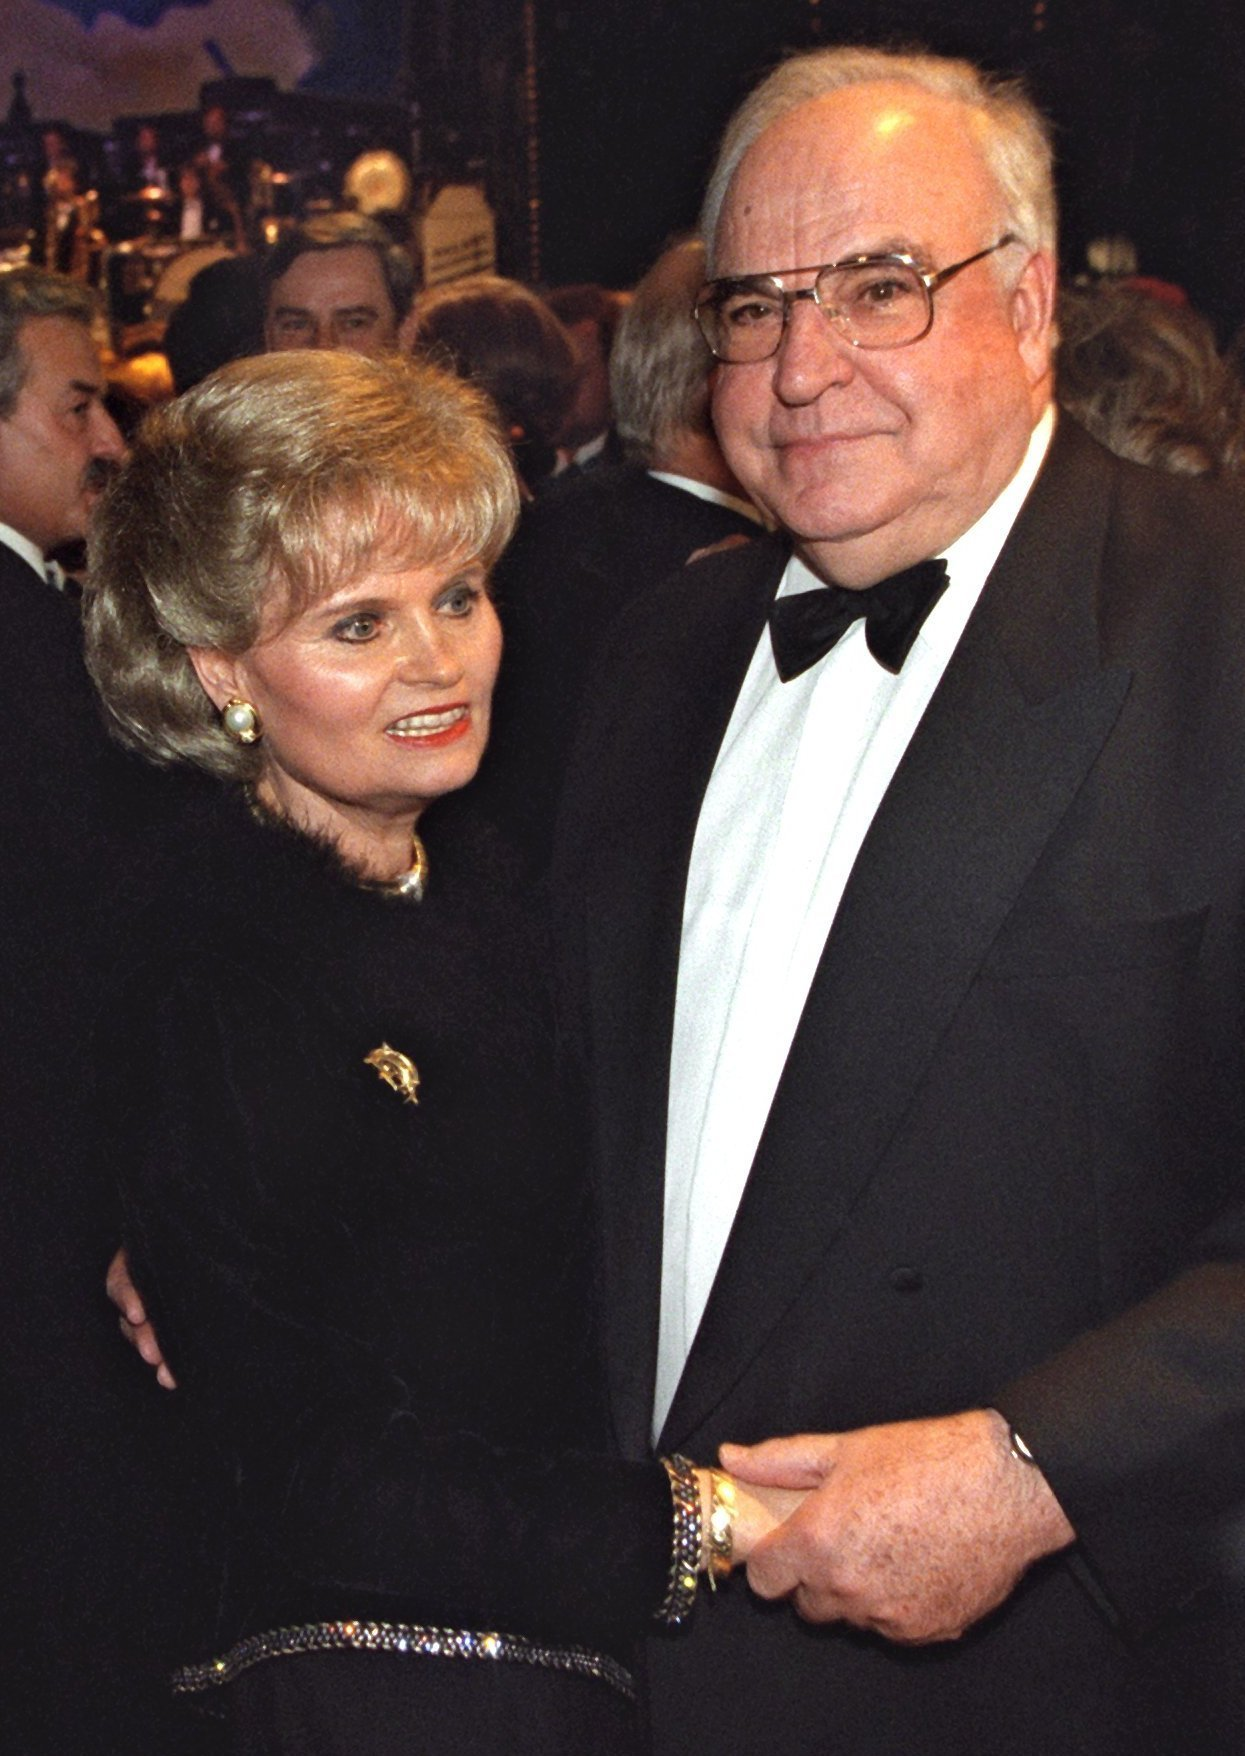 FKM17 - 19971114 - MAINZ, GERMANY : (FILES) A file photo dated 14 November 1997 of former German chancellor Helmut Kohl (R) with his wife Hannelore during a ball in Mainz. Hannelore Kohl, 68, was found dead 05 July 2001 at the Kohls home in Ludwigshafen, close to Frankfurt.   EPA PHOTO            DPA FILES/GERO BRELOER